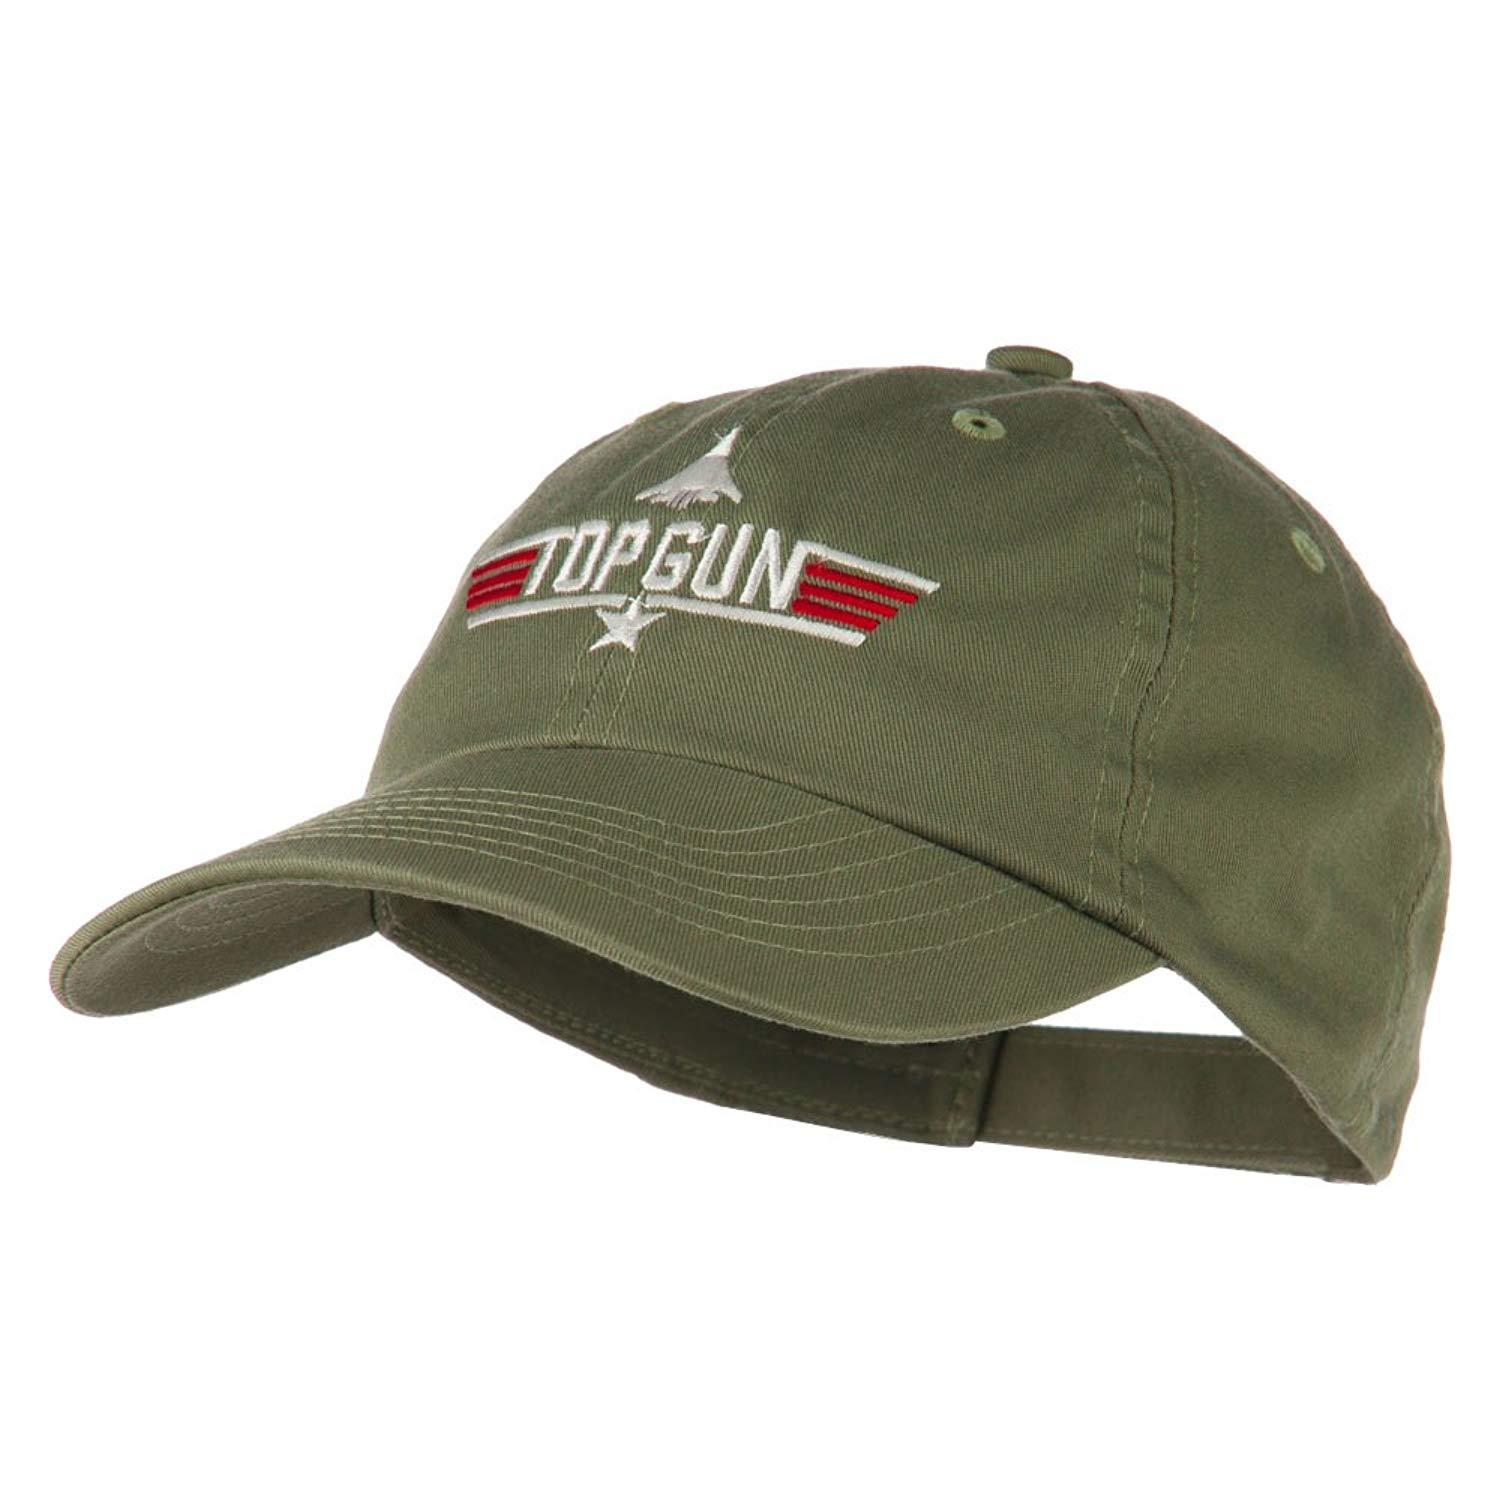 d10136ed231 Get Quotations · US Navy Top Gun Fighter Embroidered Washed Cap - Olive